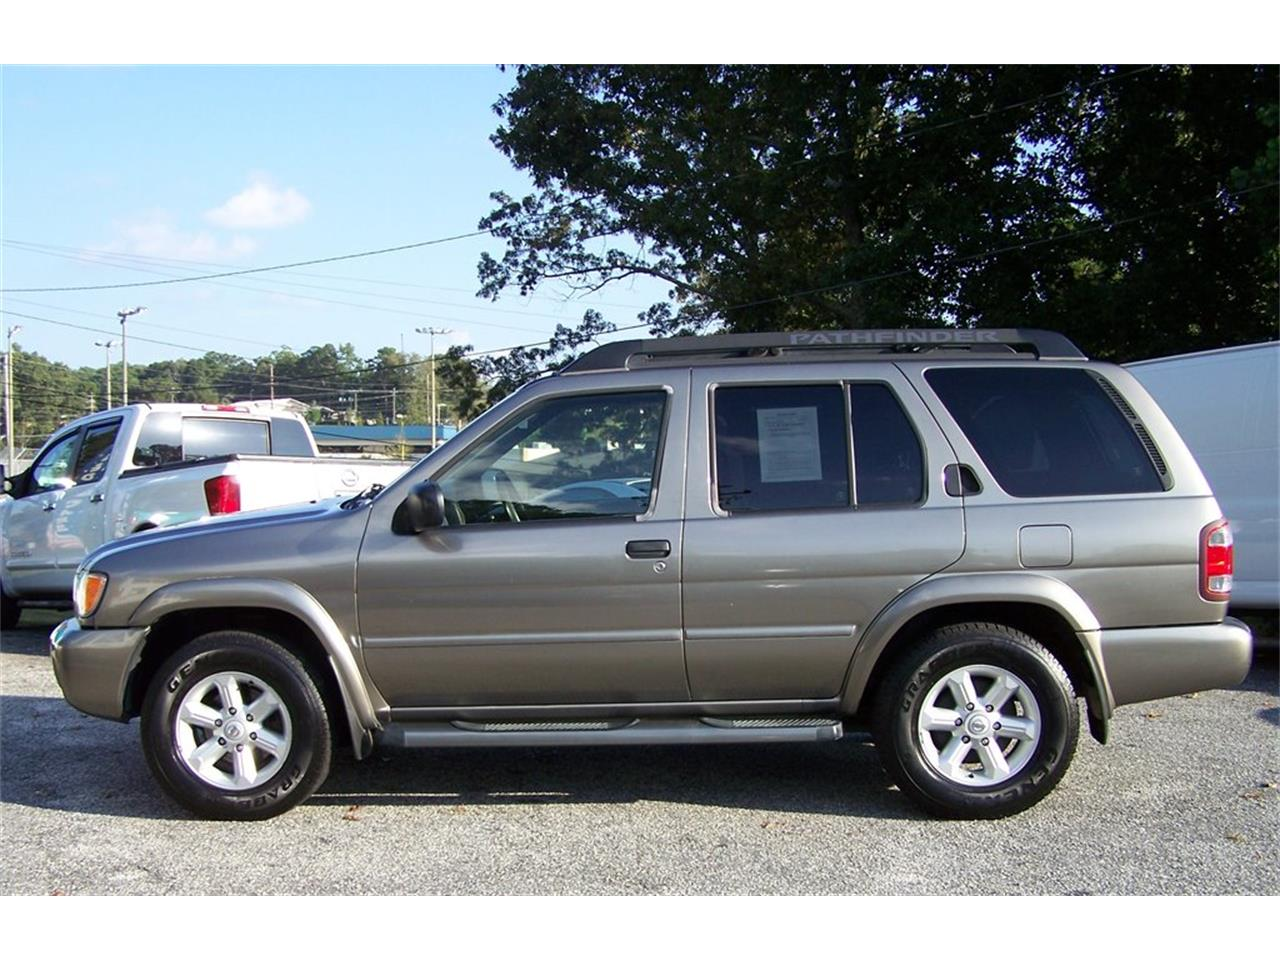 For Sale: 2004 Nissan Pathfinder in Canton, Georgia